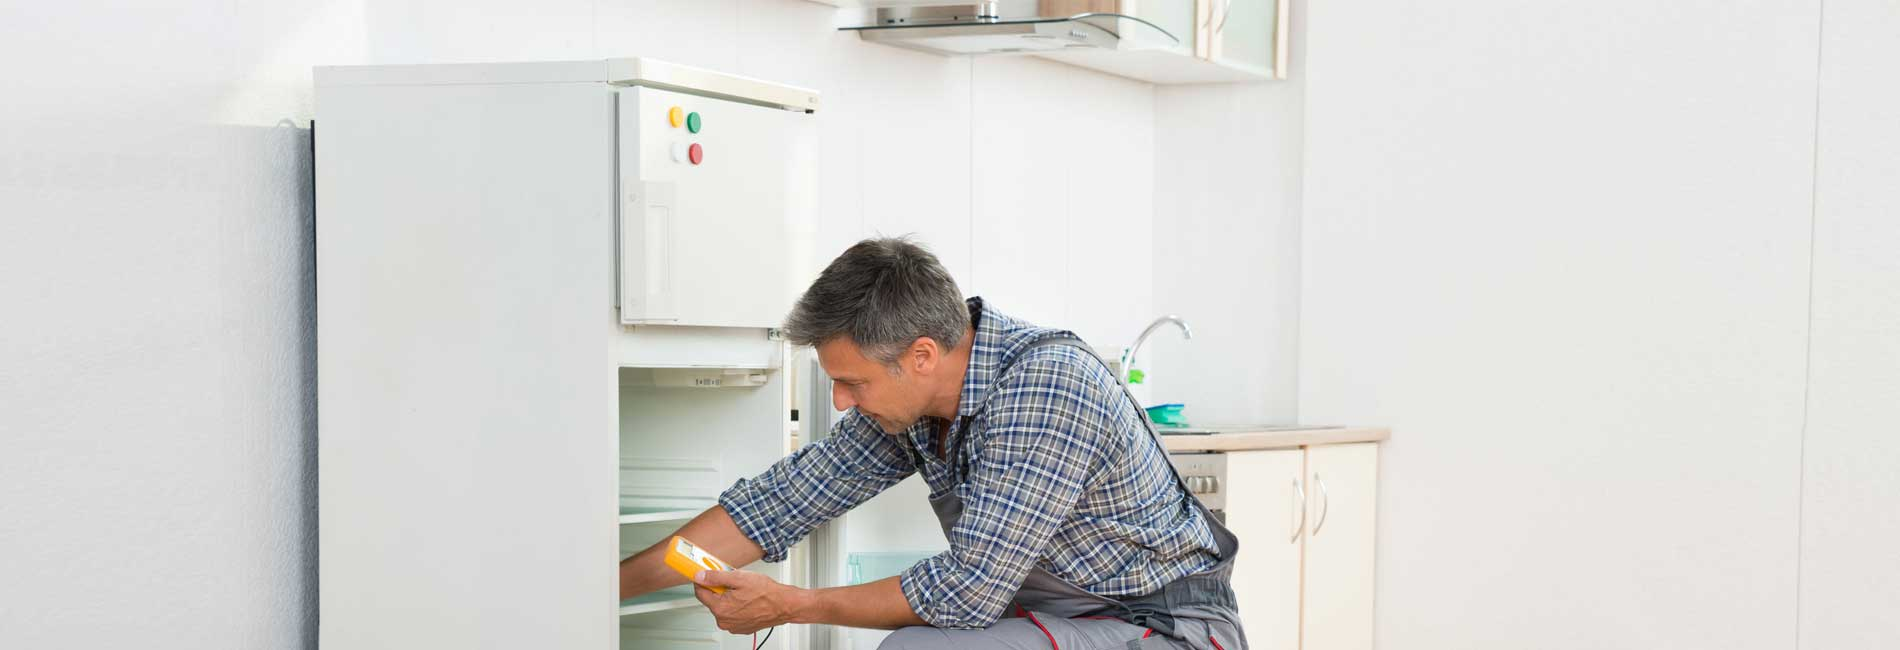 Refrigerator Repair in East Tambaram